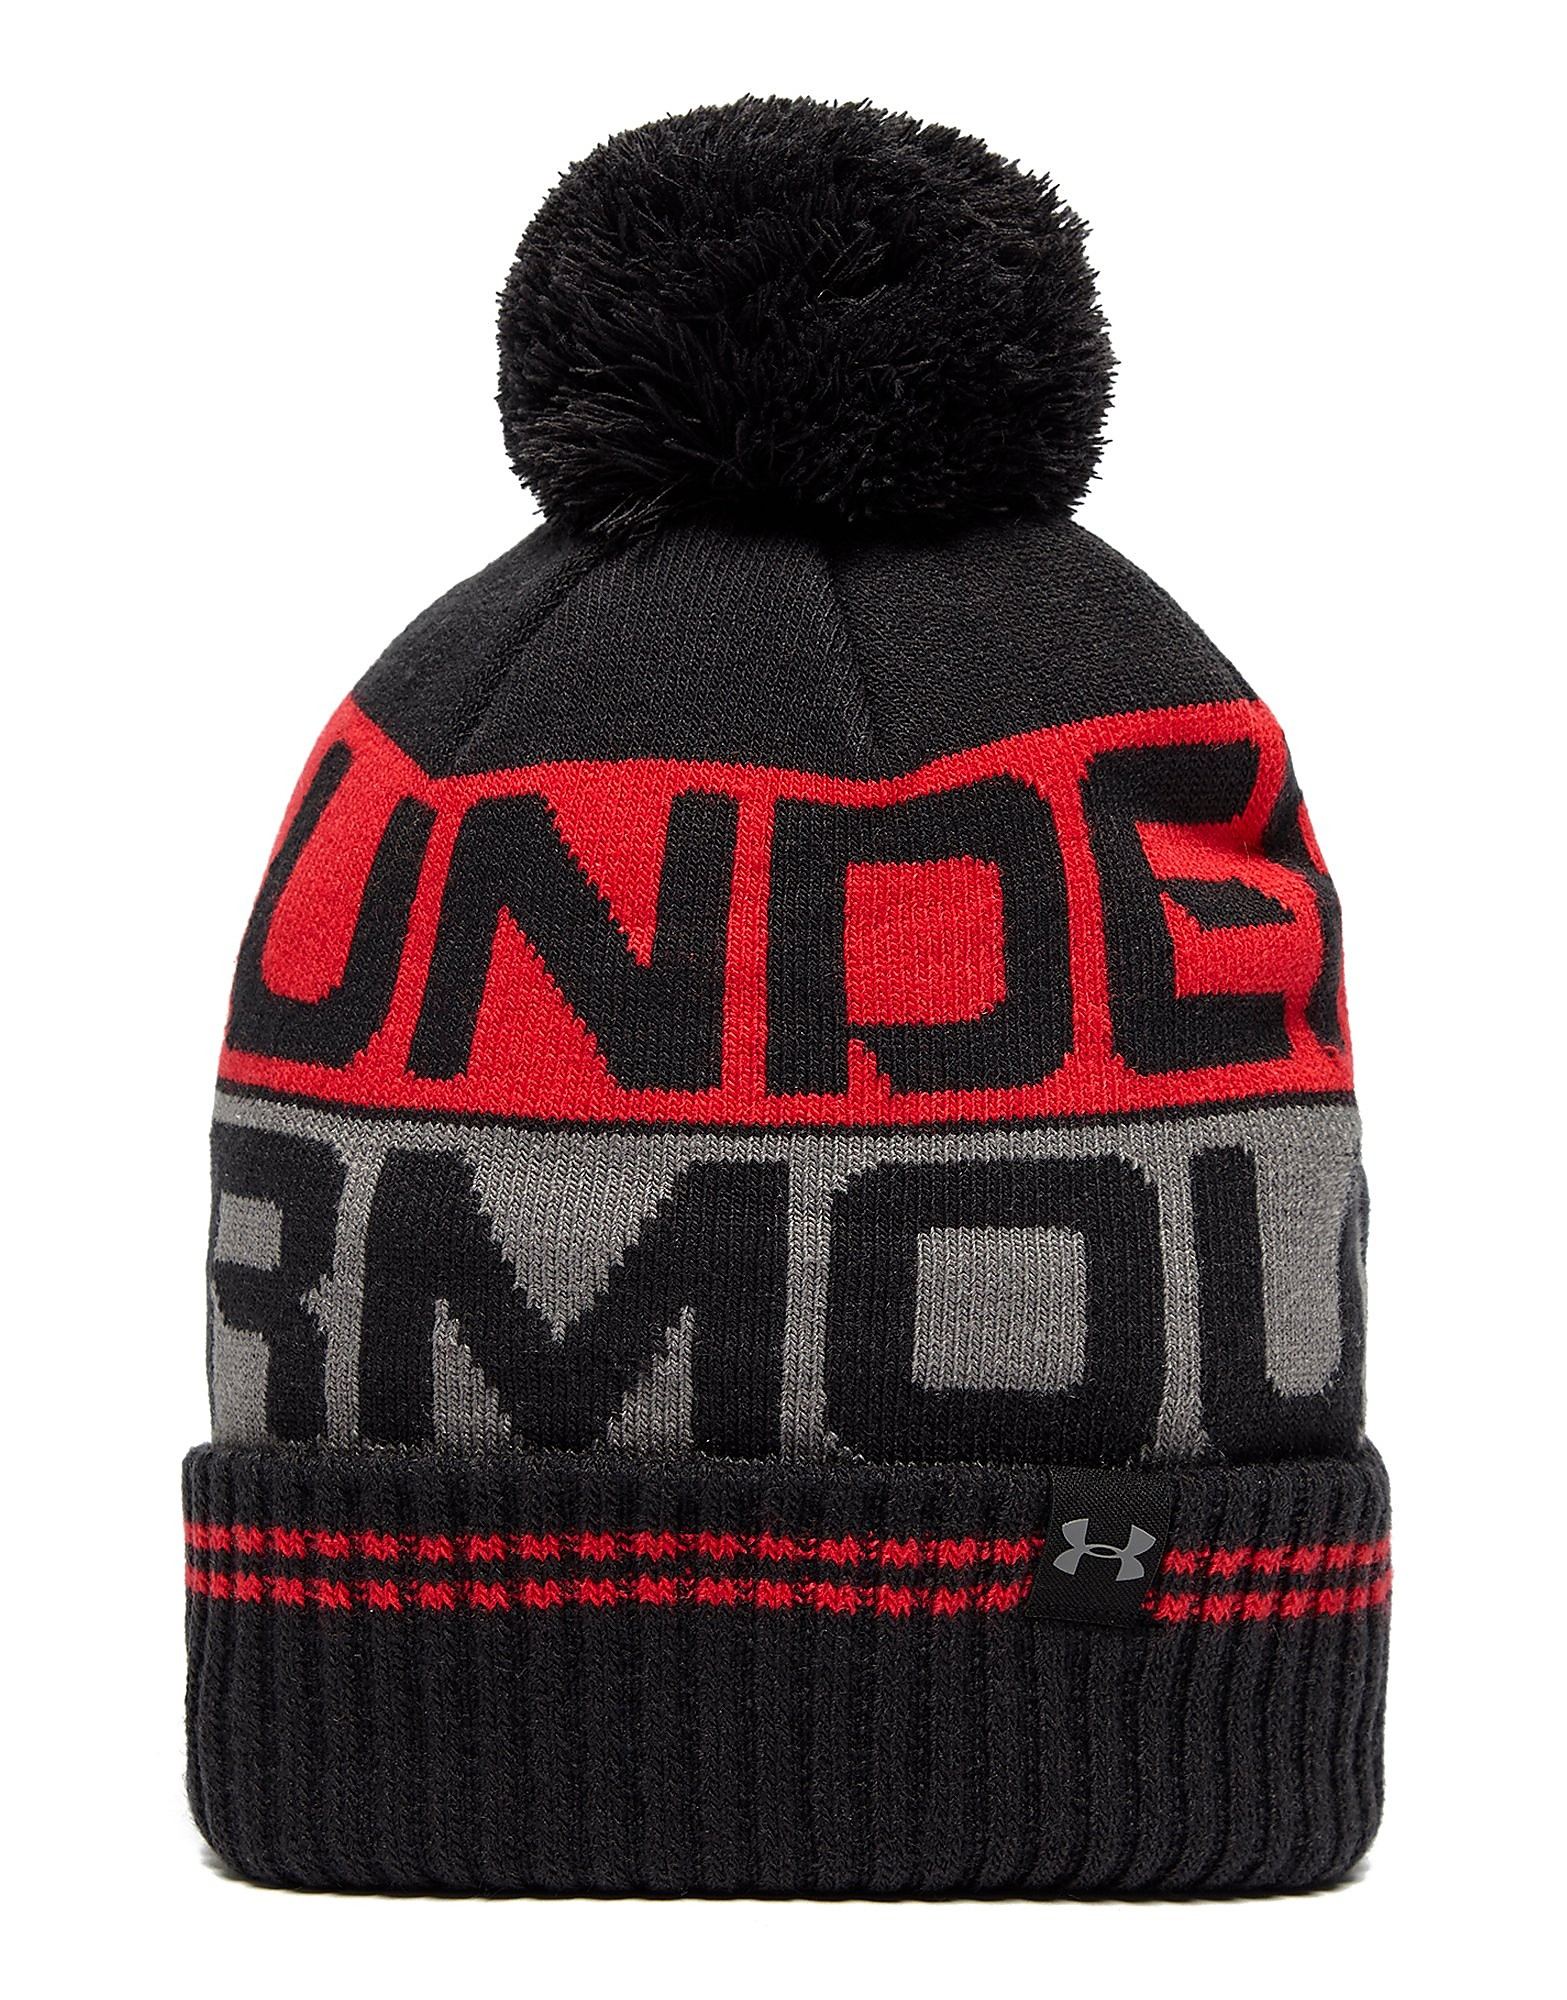 Under Armour Retro Pom 2.0 Beanie Hat